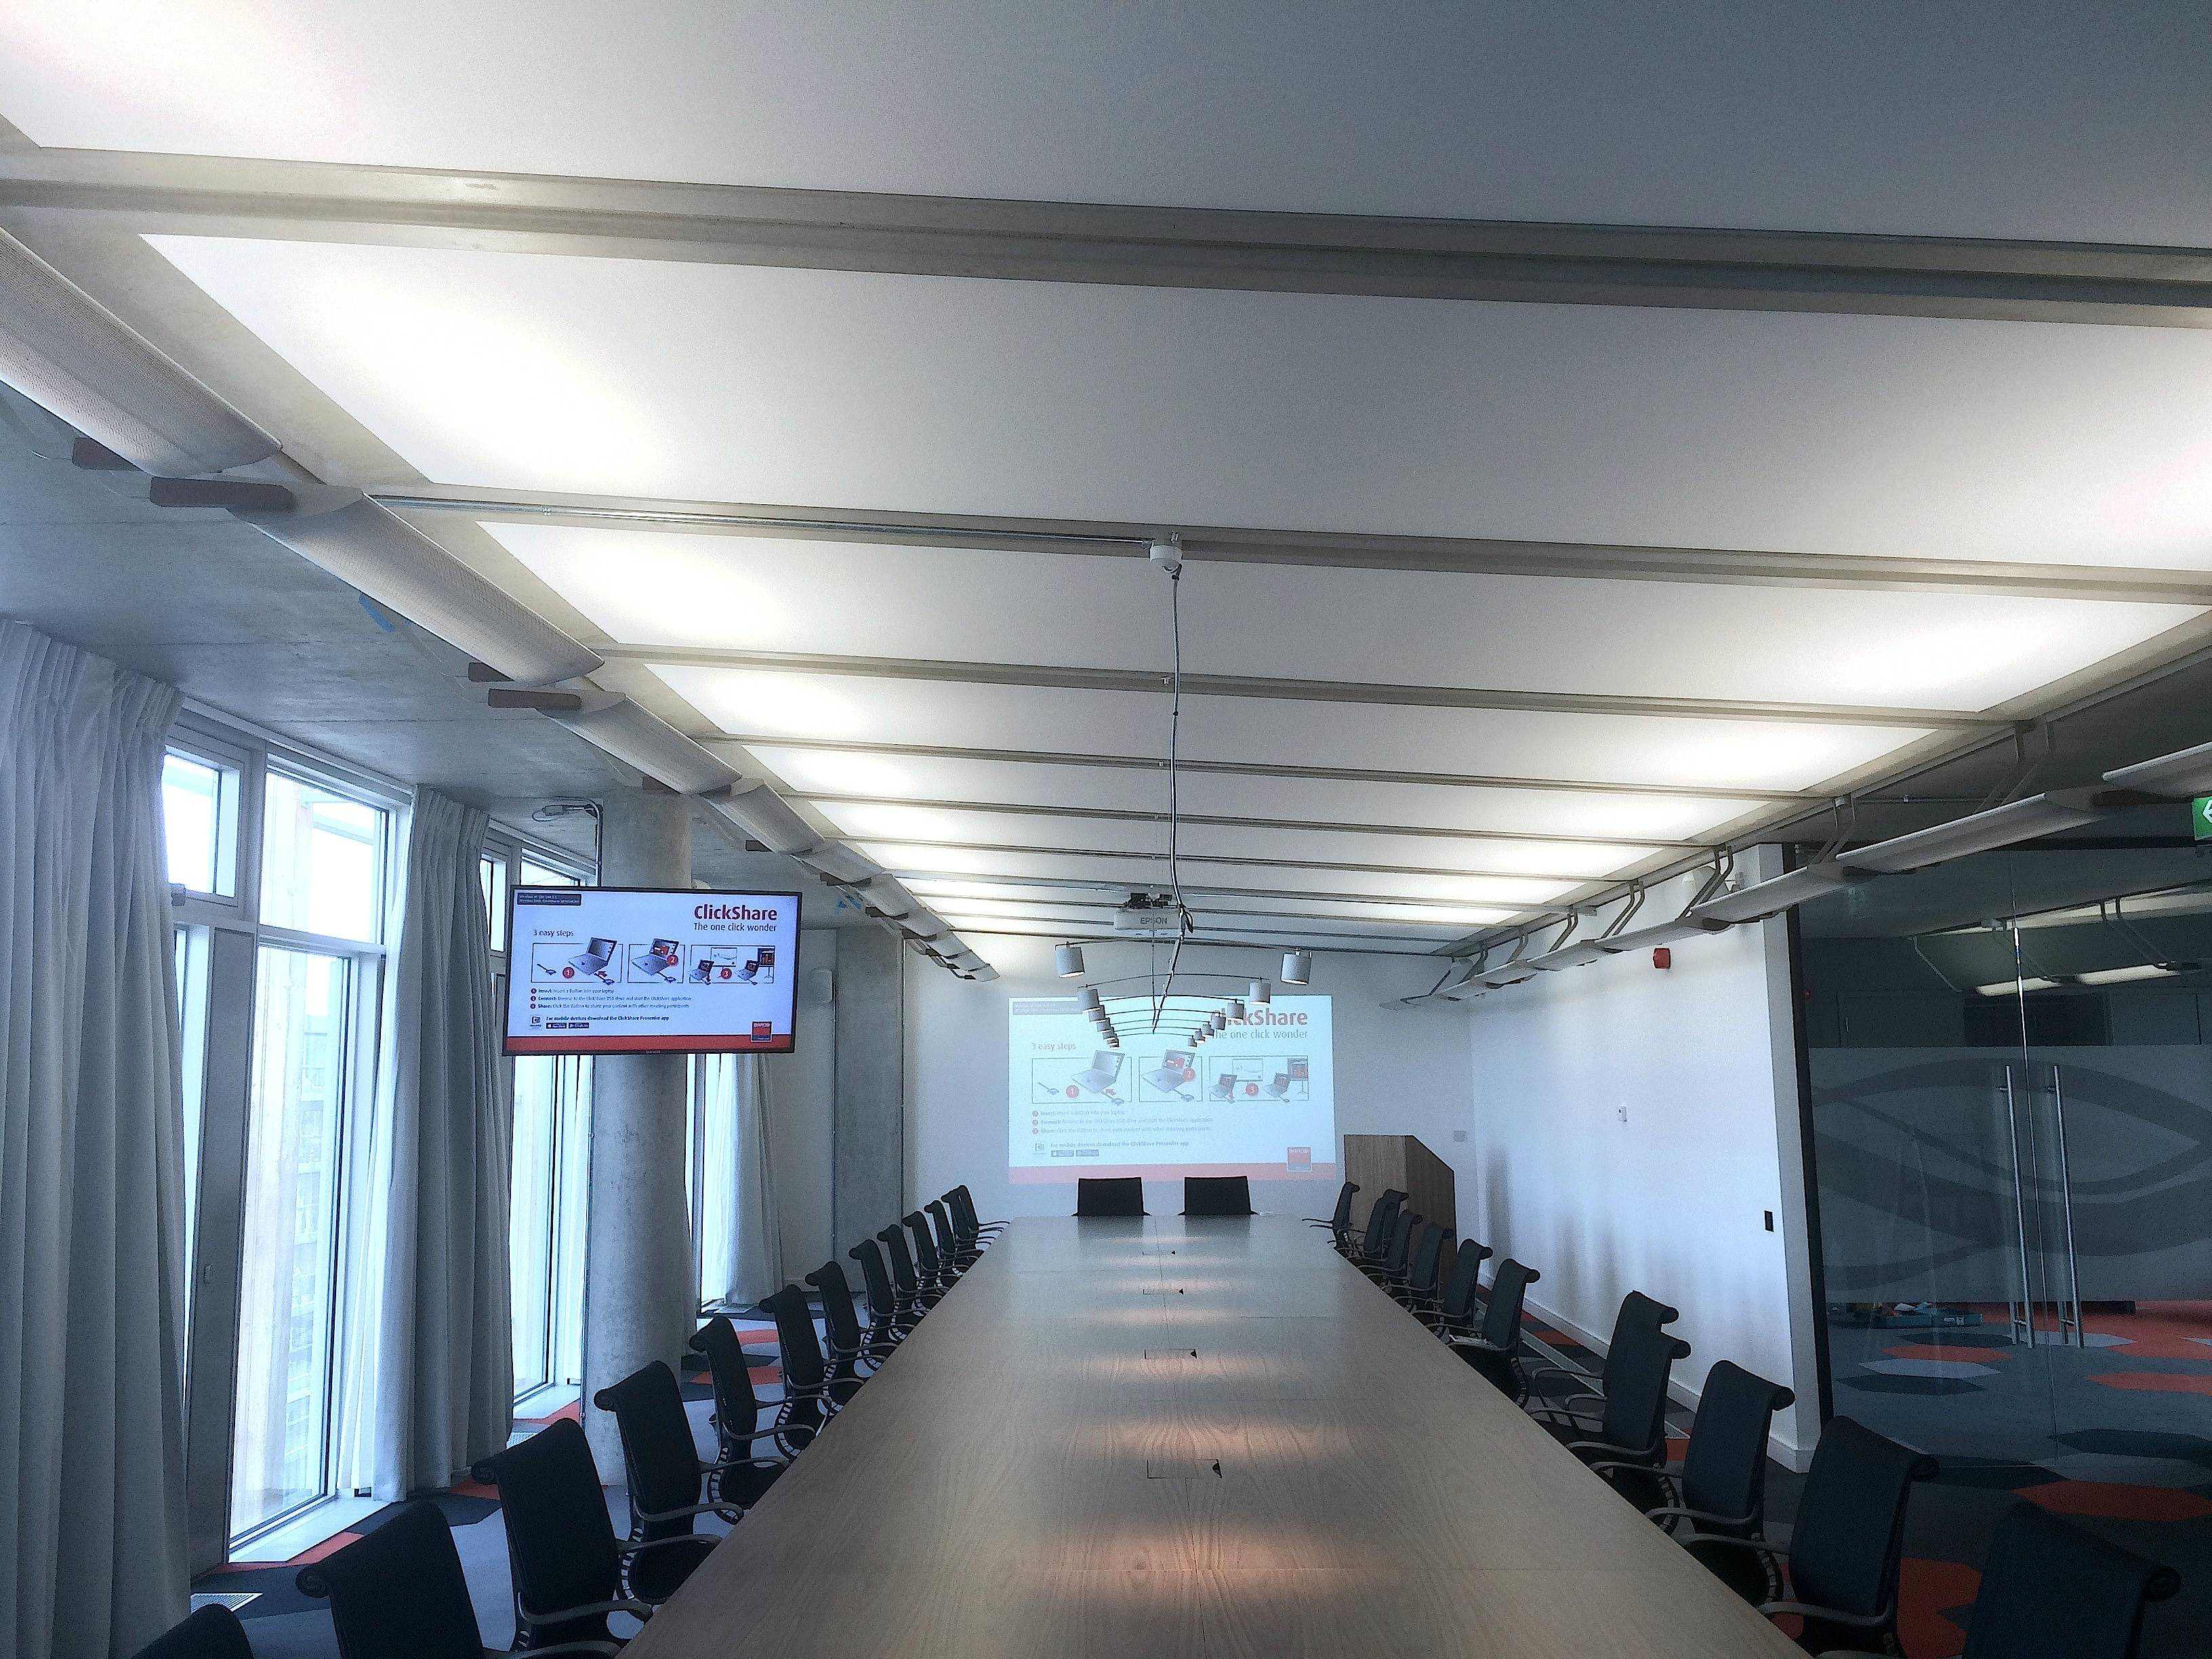 Wipro Board Room 2